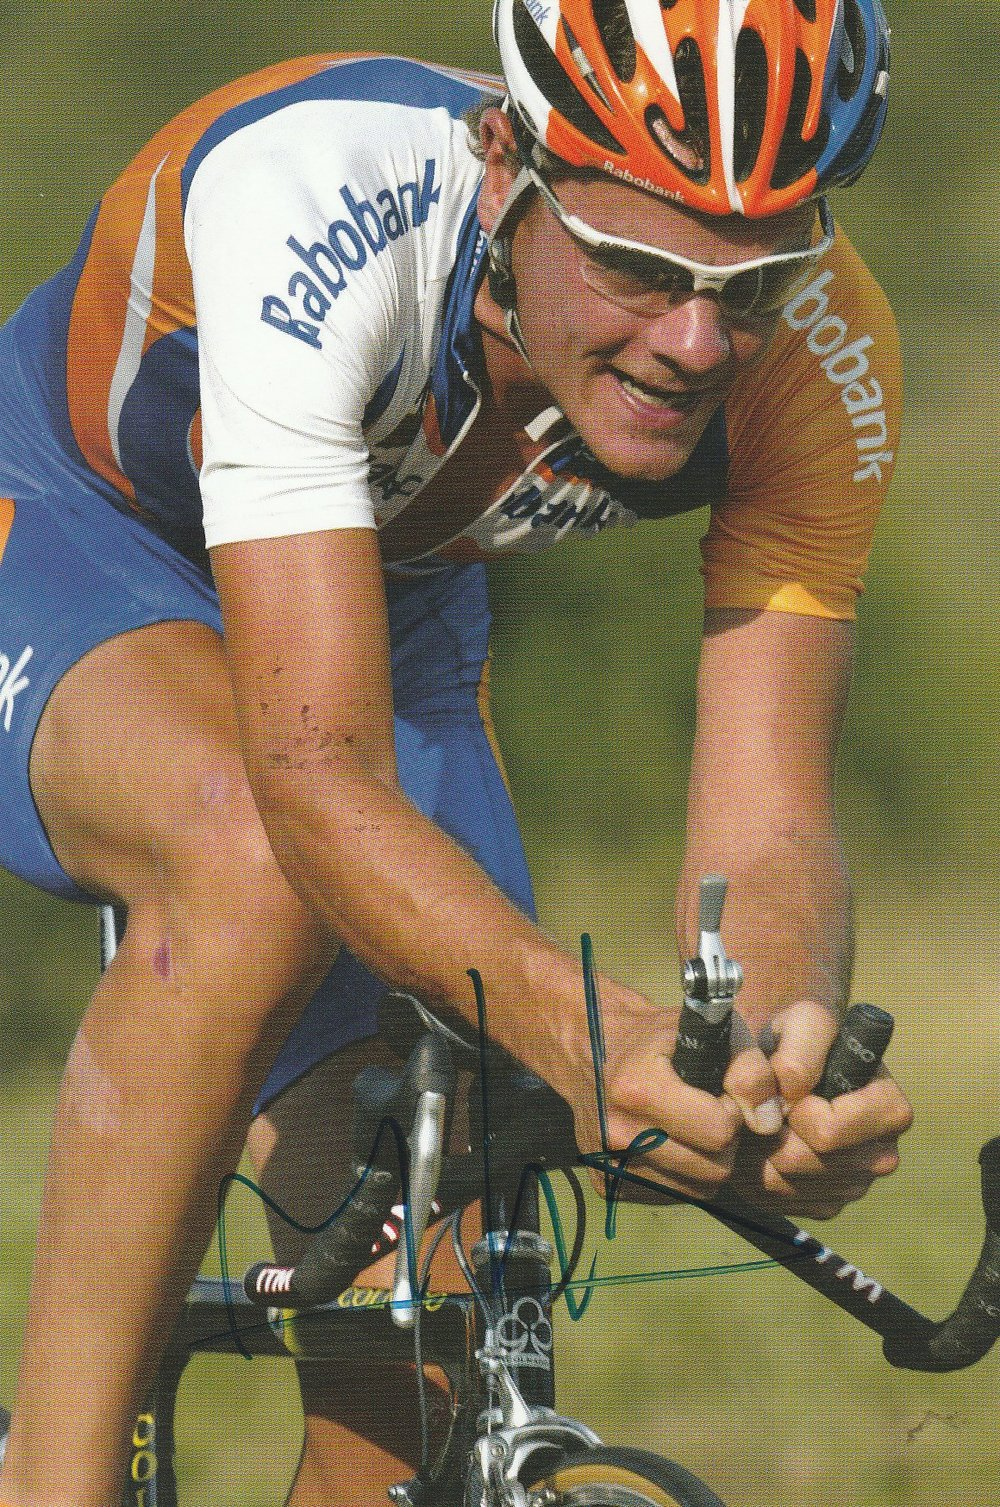 Marc Lotz rode the Tour de France five times (Photograph courtesy of autographe1.e-monsite.com)